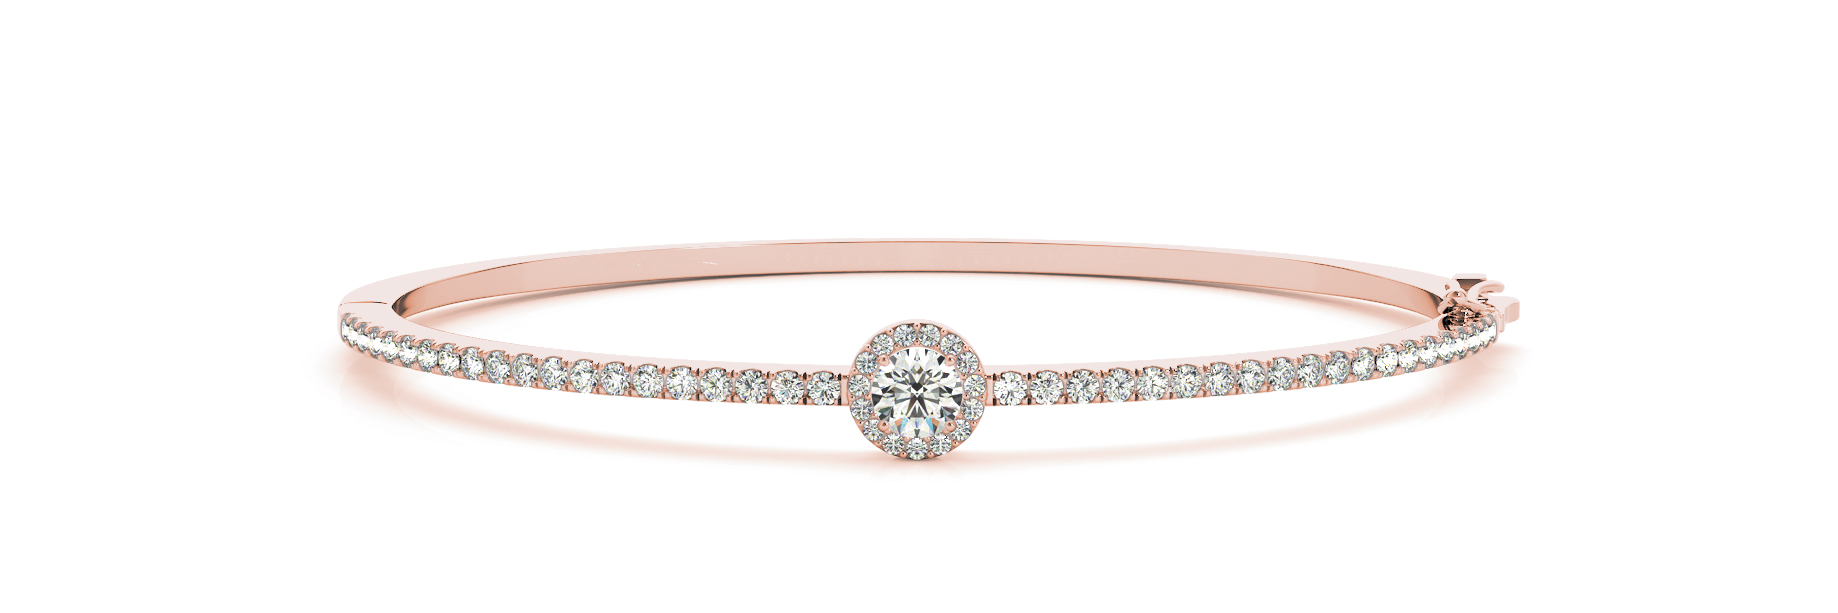 Round Diamond Center Stone Halo Rose Gold Bangle